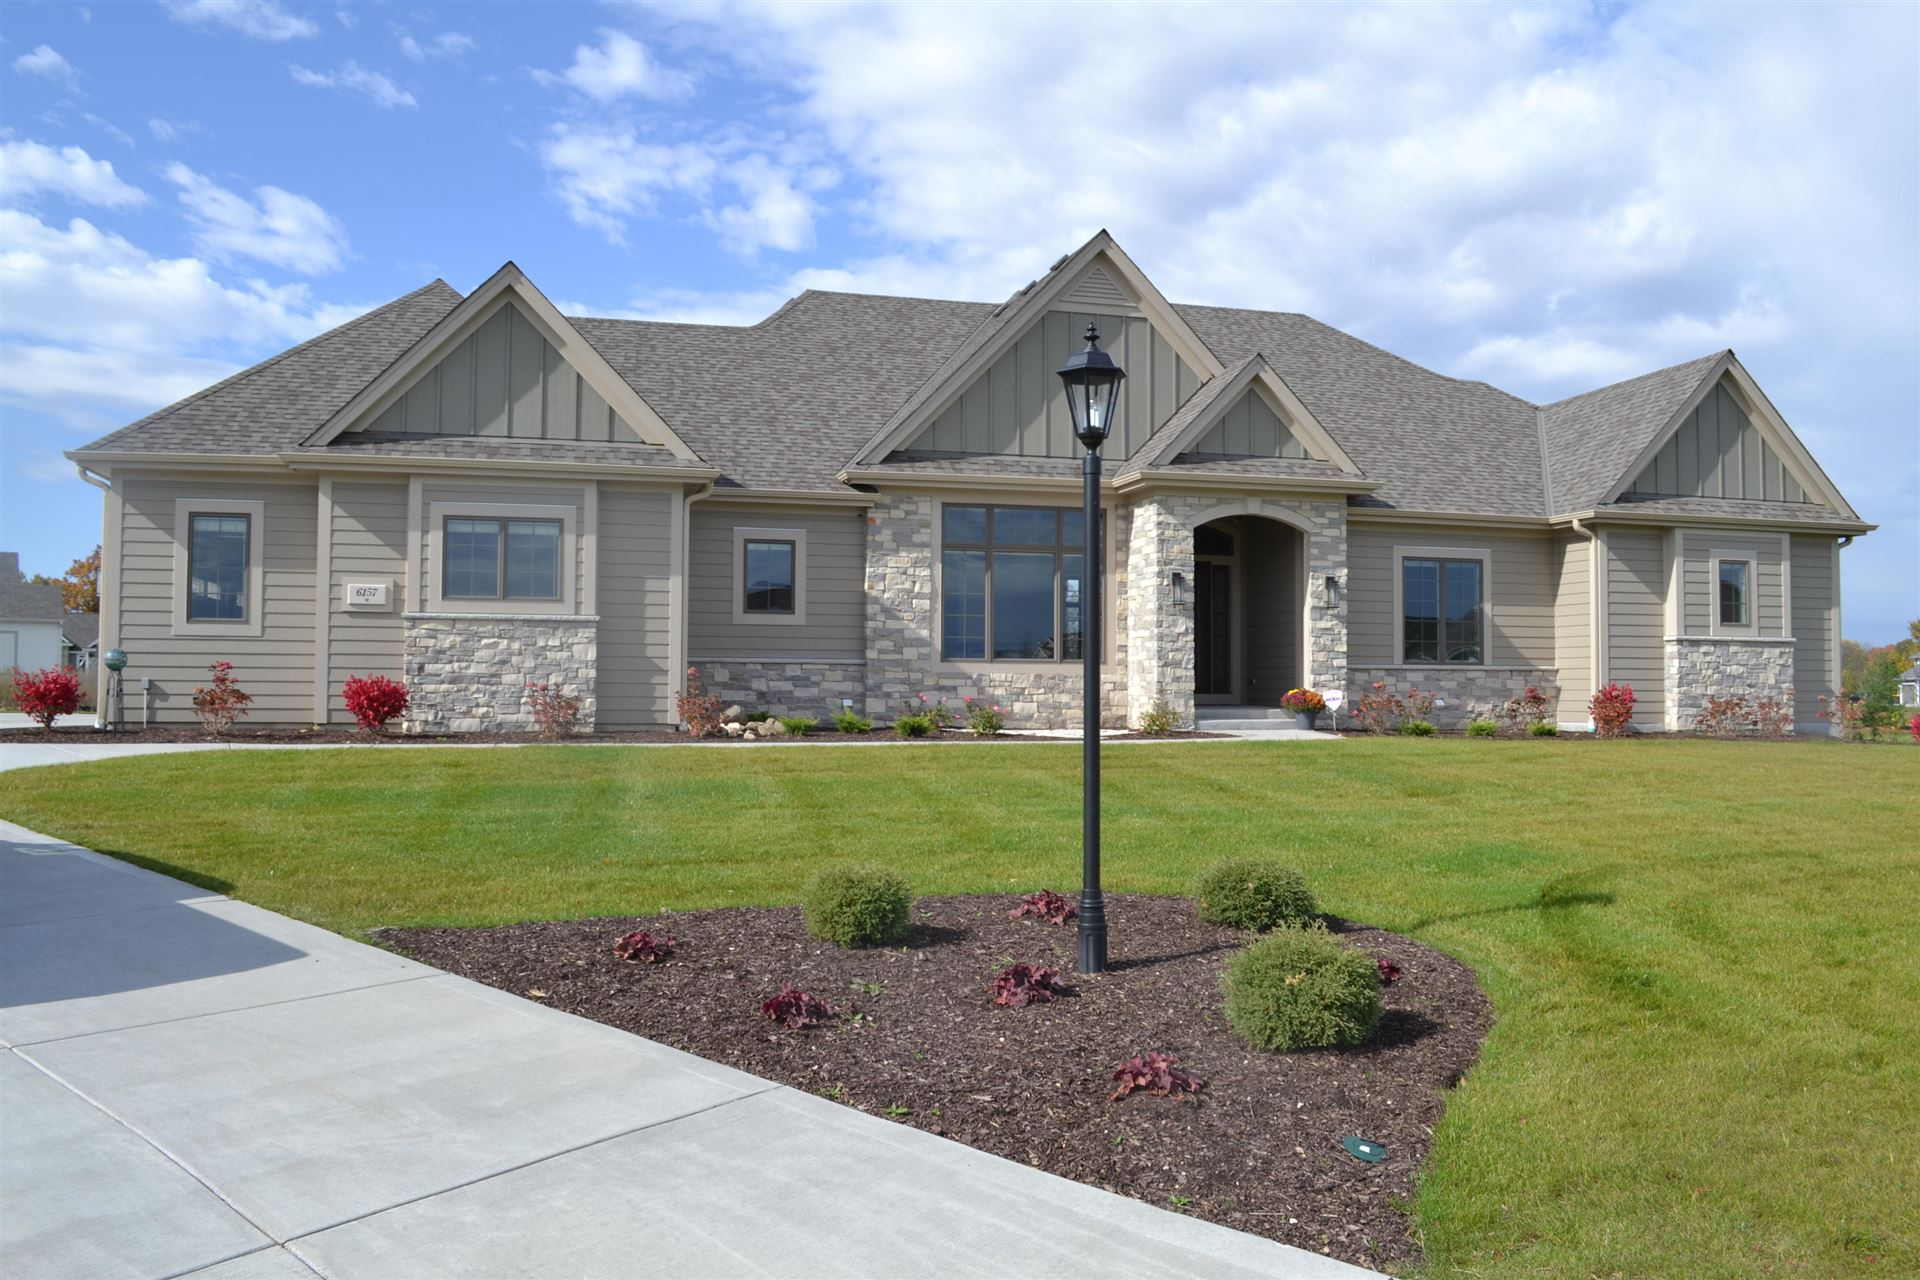 6157 S Grouse Hollow Ct, New Berlin, WI 53151 - #: 1714867